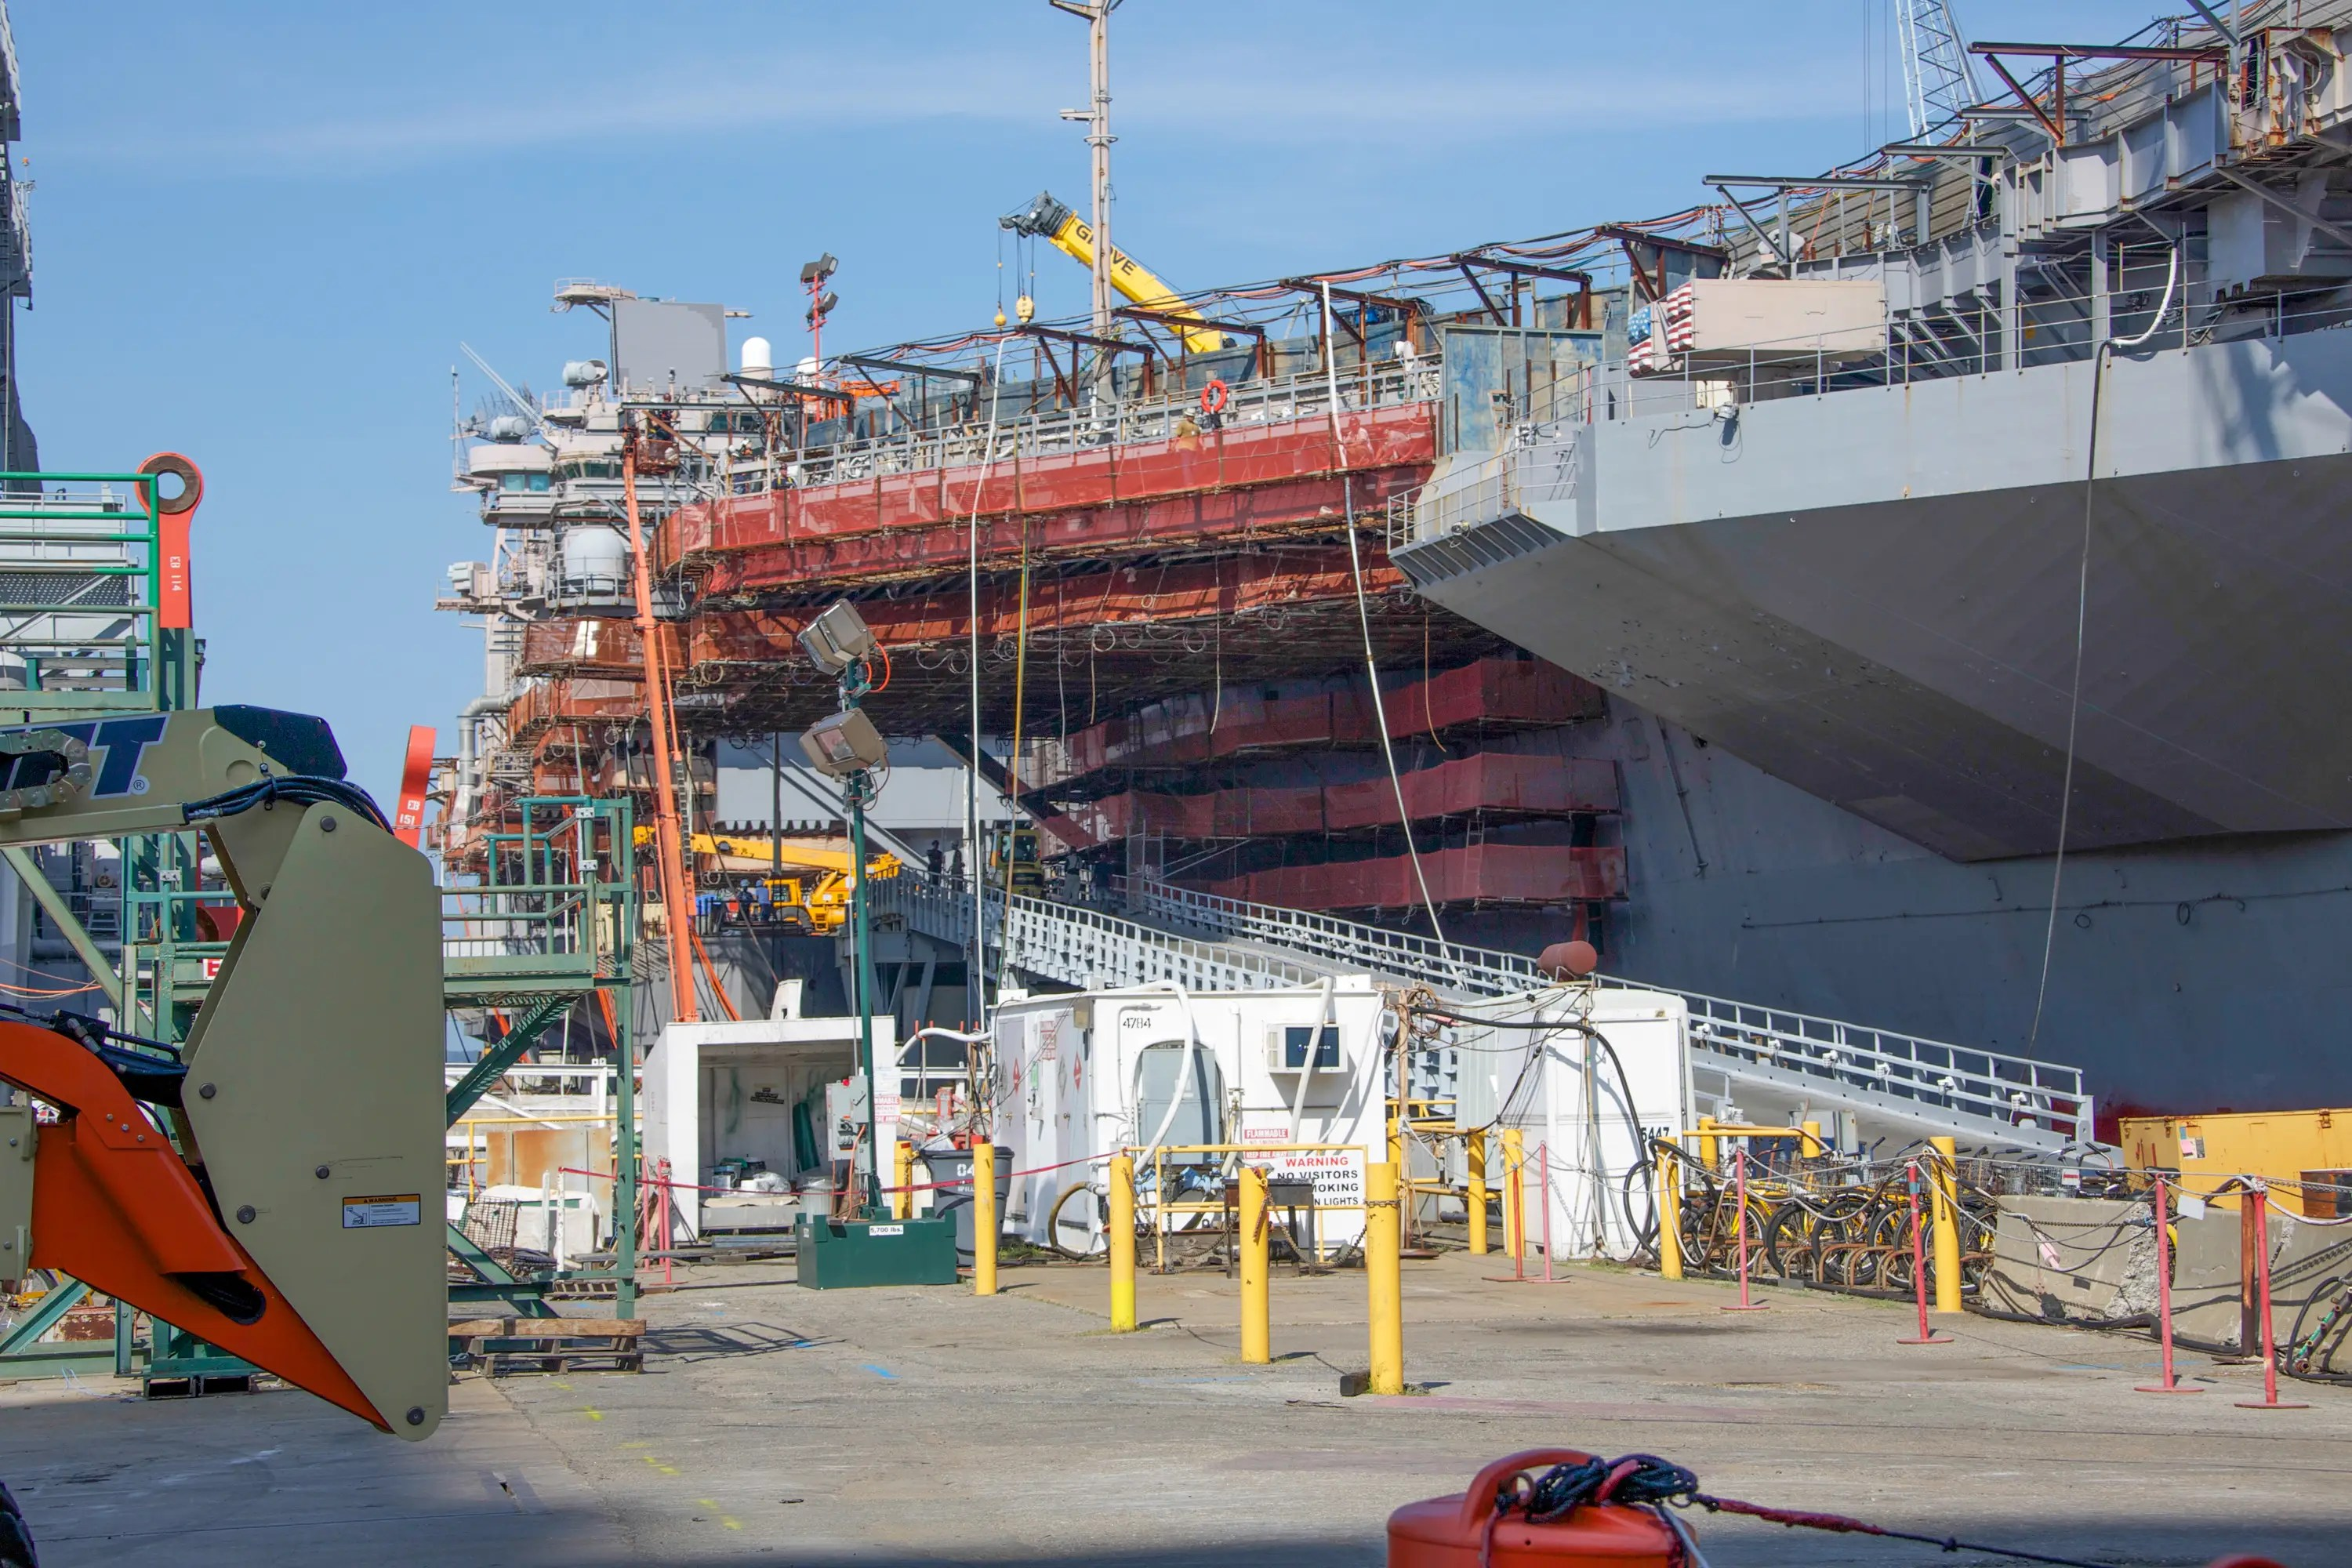 The bottom line is, civilian and Navy coexist here in a world fully dedicated to producing the most powerful machinery for the most powerful navy in the world.